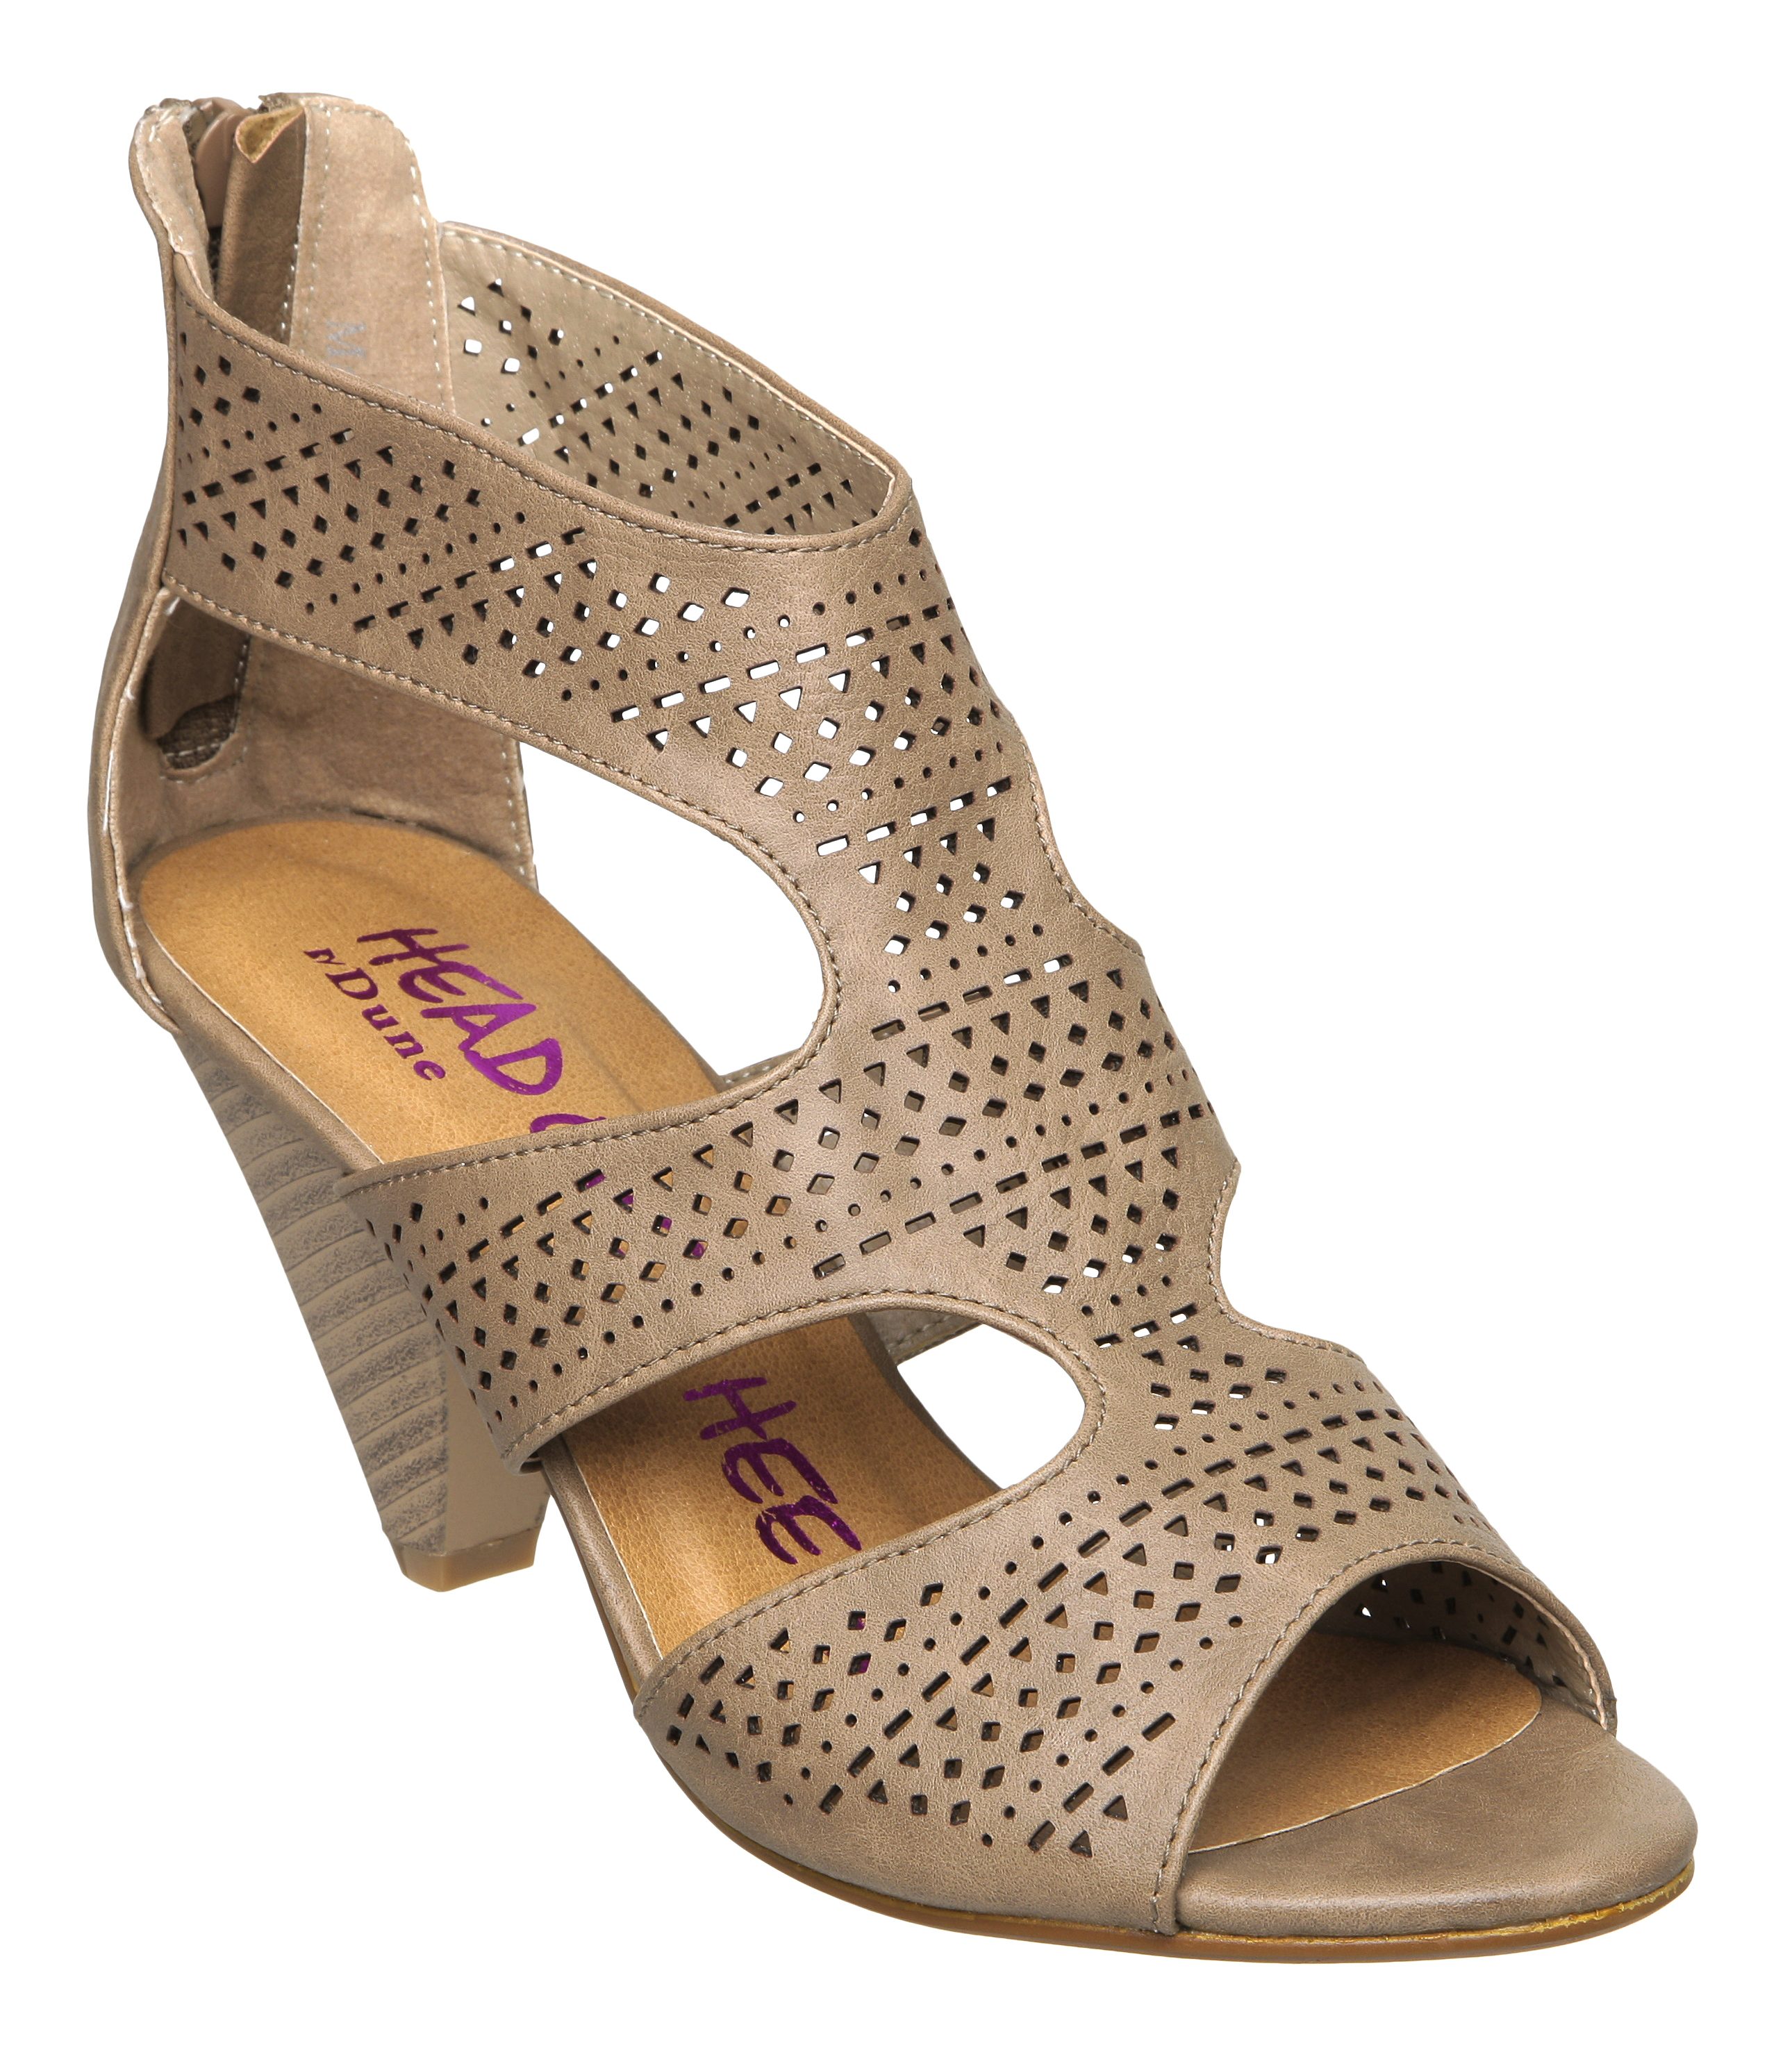 NEW-HEAD-OVER-HEELS-WOMENS-FERNIE-TAUPE-BROWN-LADIES-CUBAN-HEEL-SHOES-SIZE-3-8